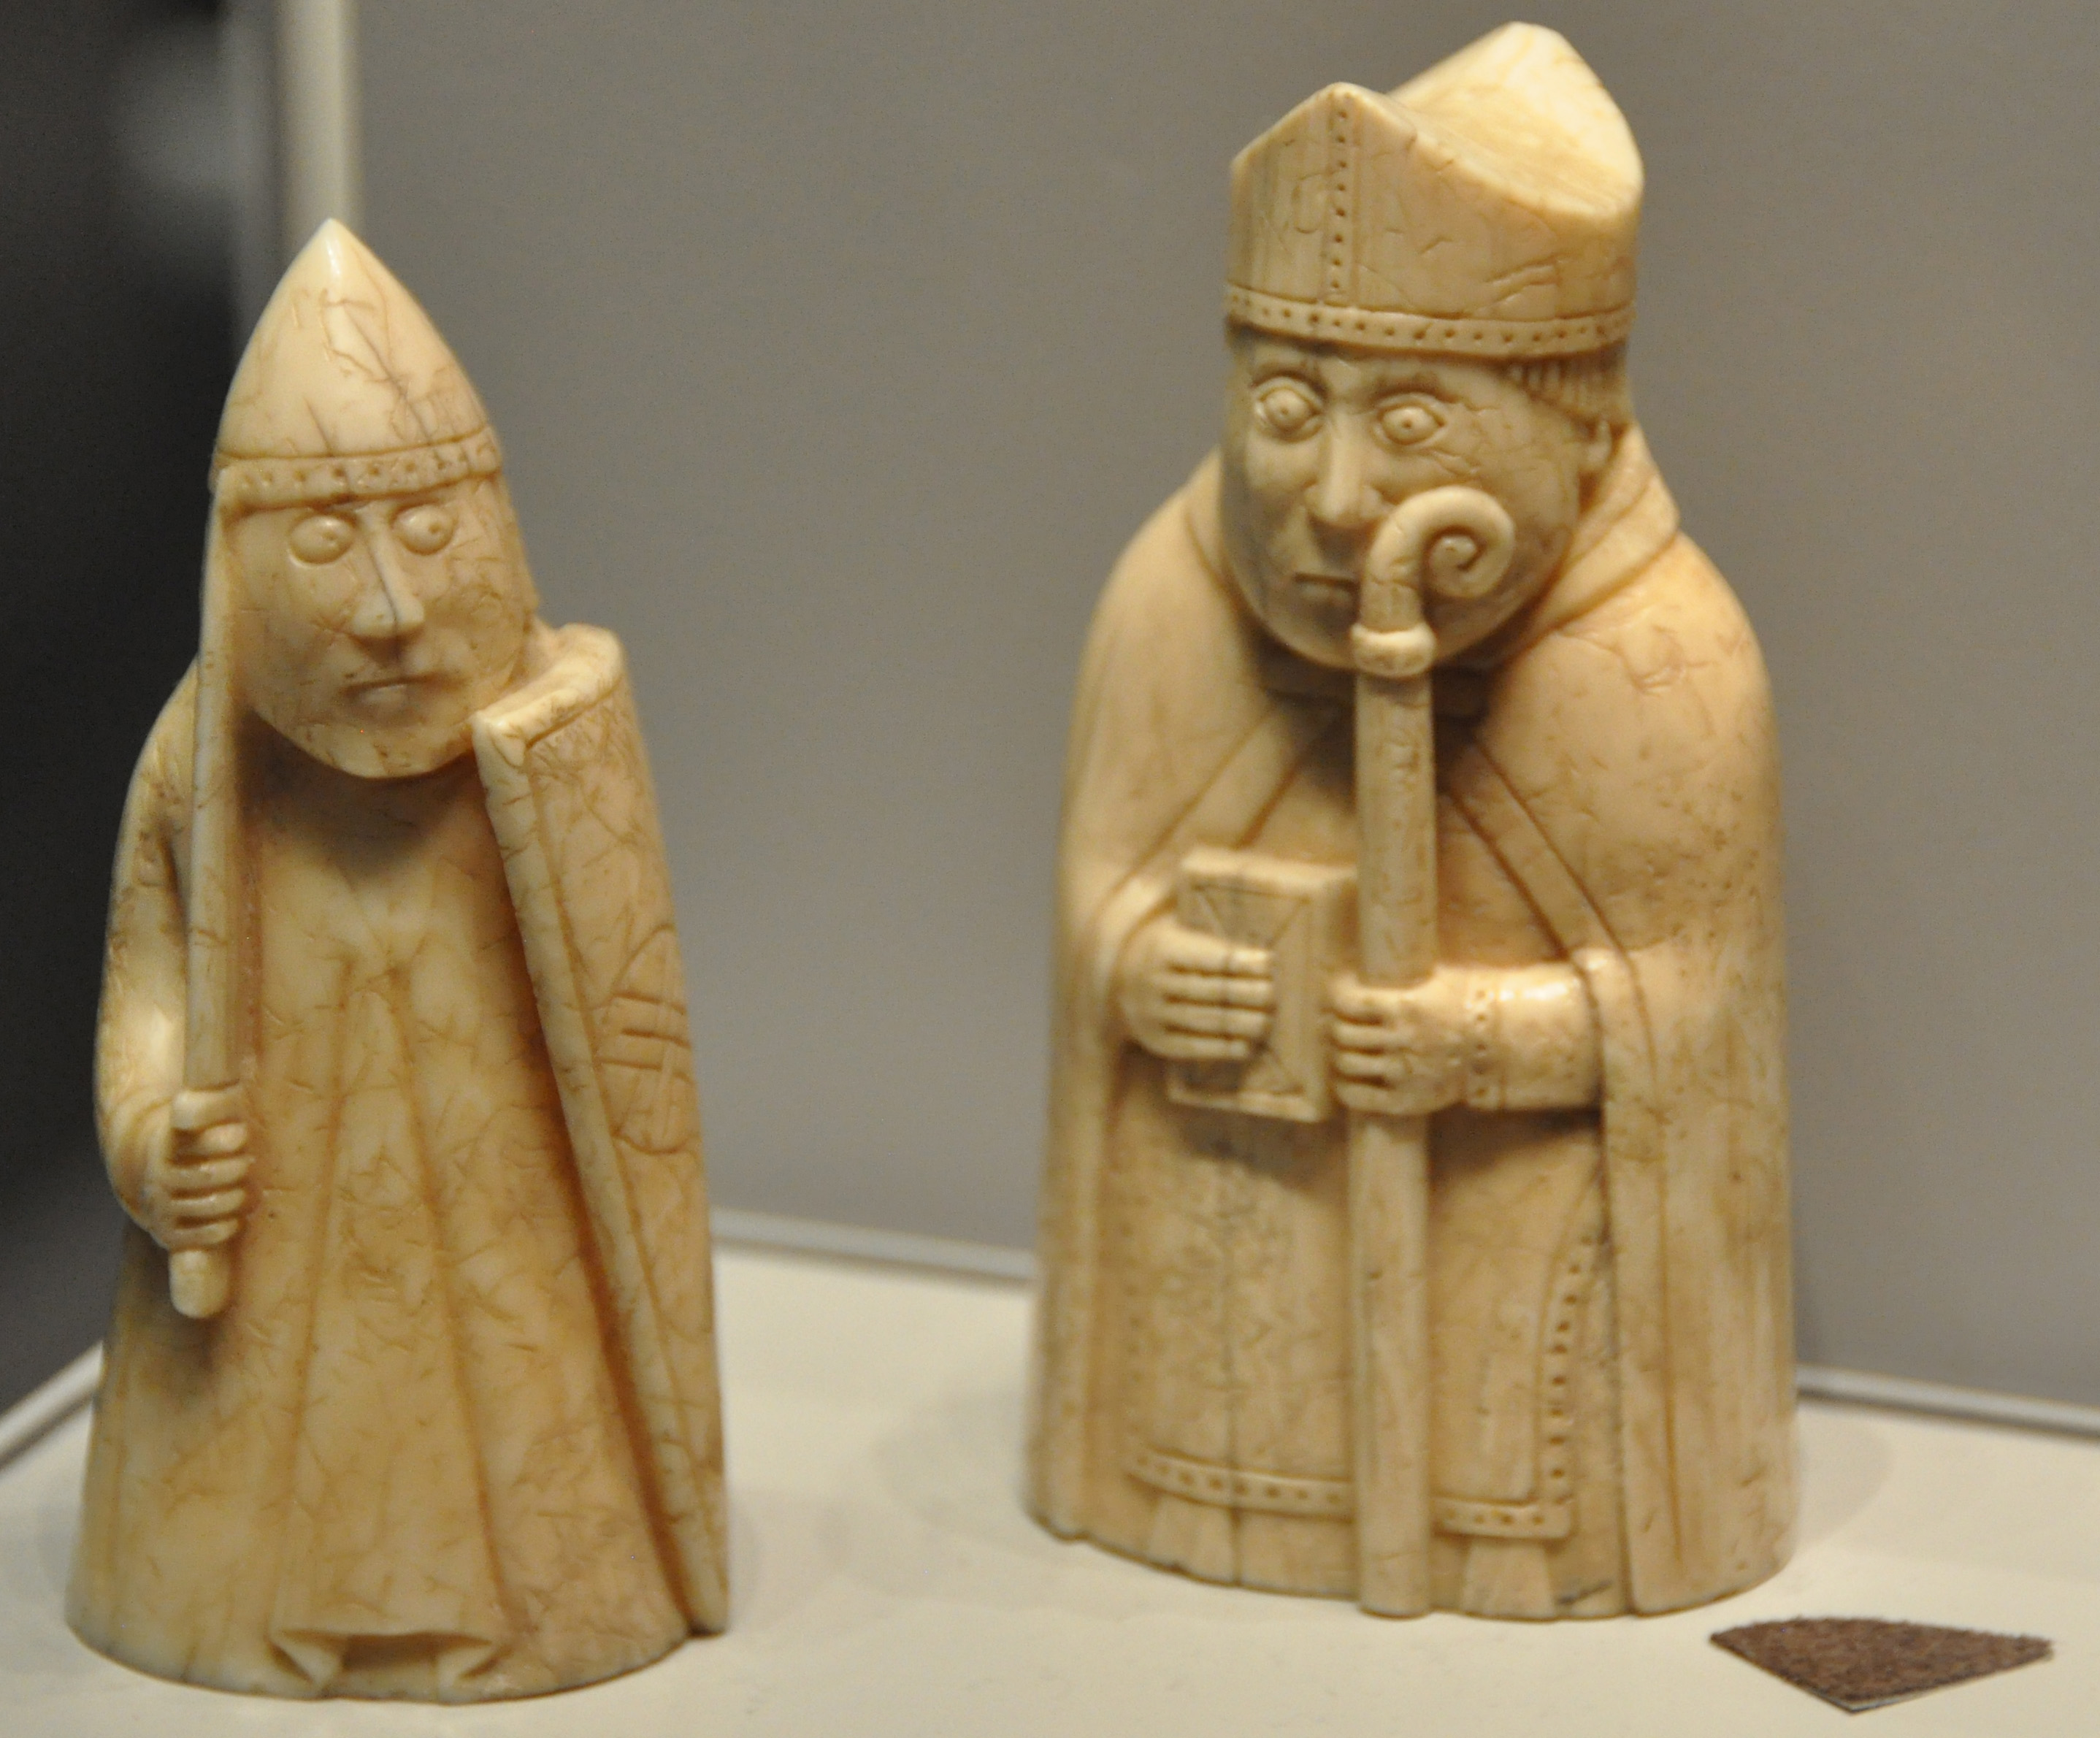 Lewis Chessmen, British Museum